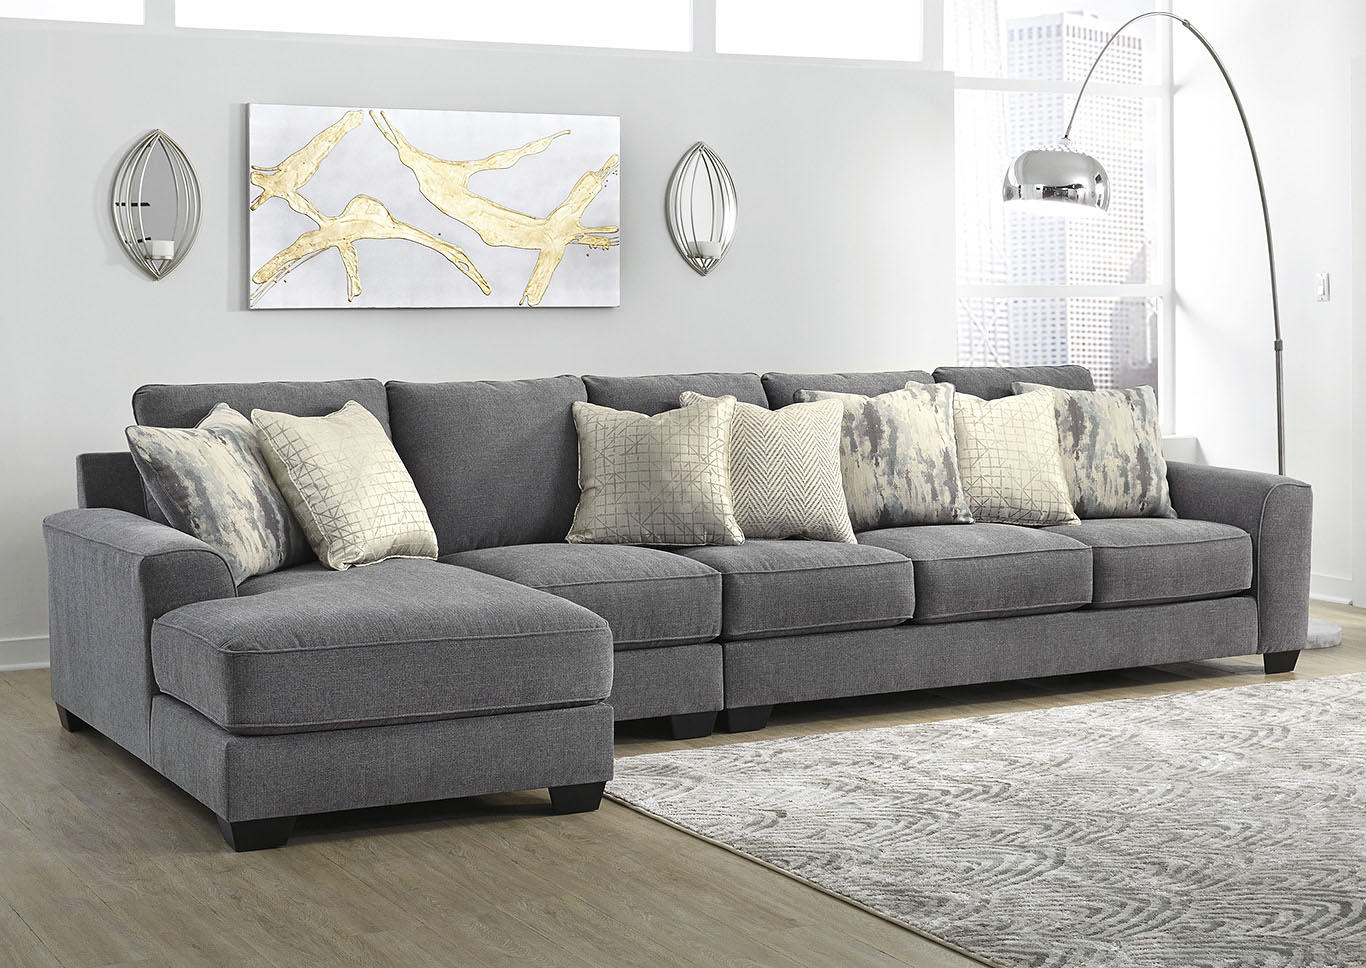 Castano Jewel 3 Piece Laf Chaise Sectional Ashley Throughout Norfolk Grey 3 Piece Sectionals With Laf Chaise (View 13 of 15)